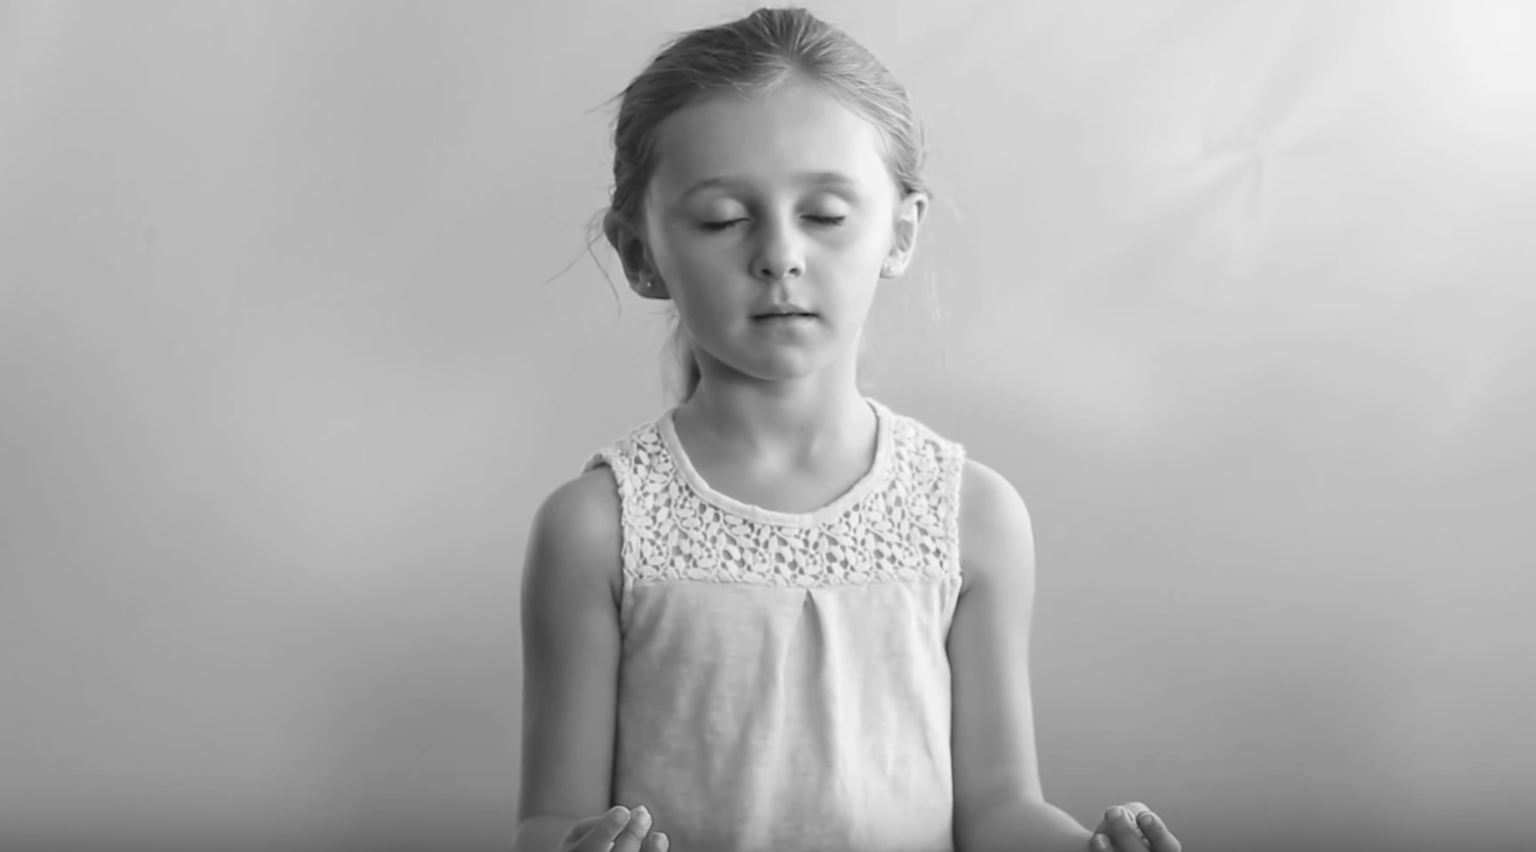 Short Film 'Just Breathe' Helps Kids Deal with Emotions